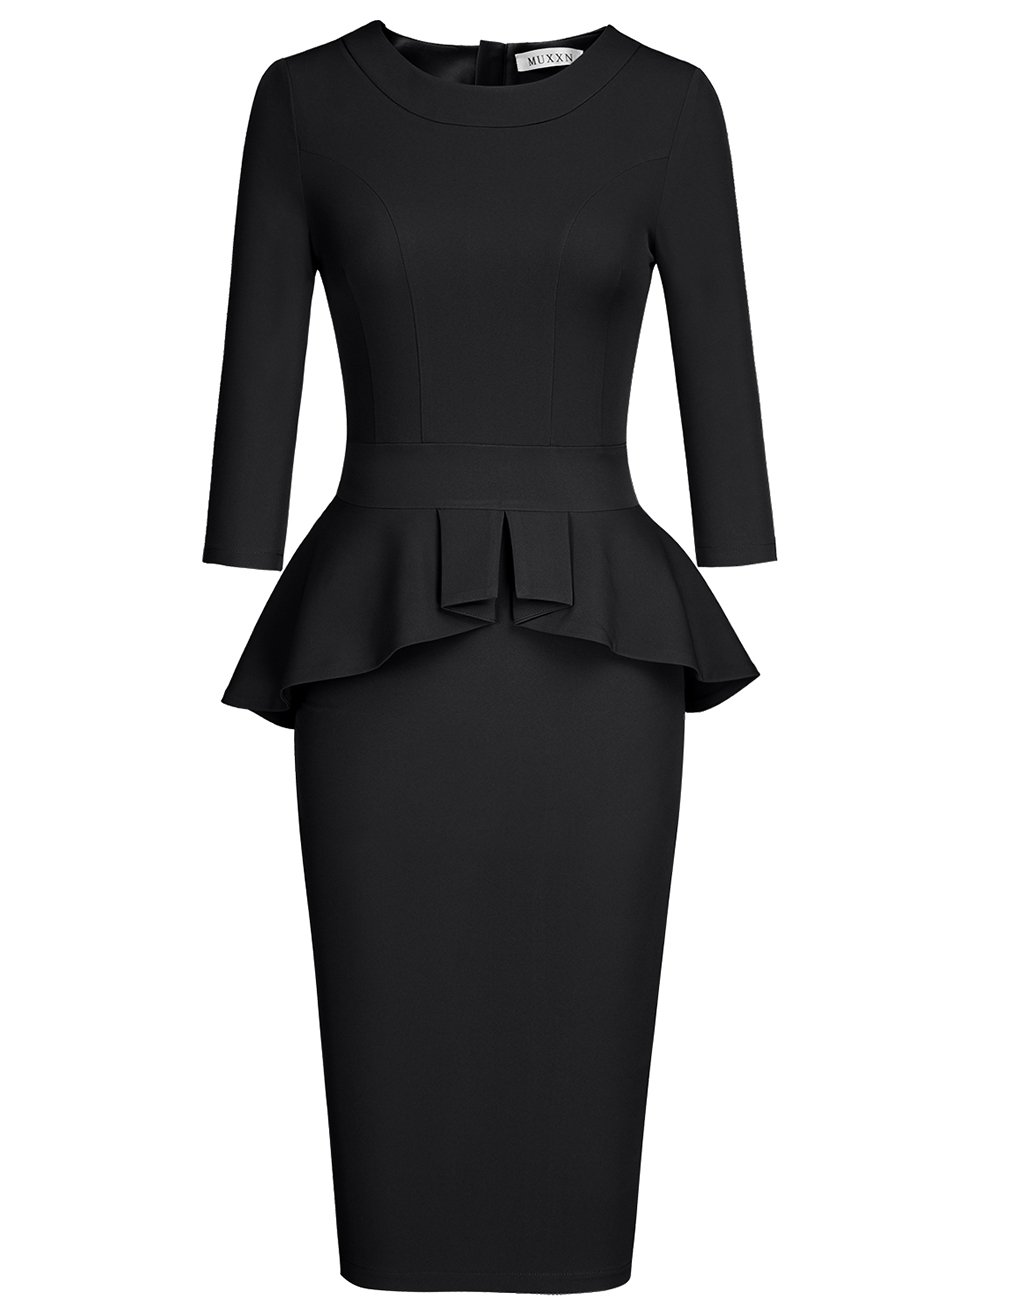 Available at Amazon: MUXXN Women's Crew Neck Peplum Knee Length Party Pencil Dress